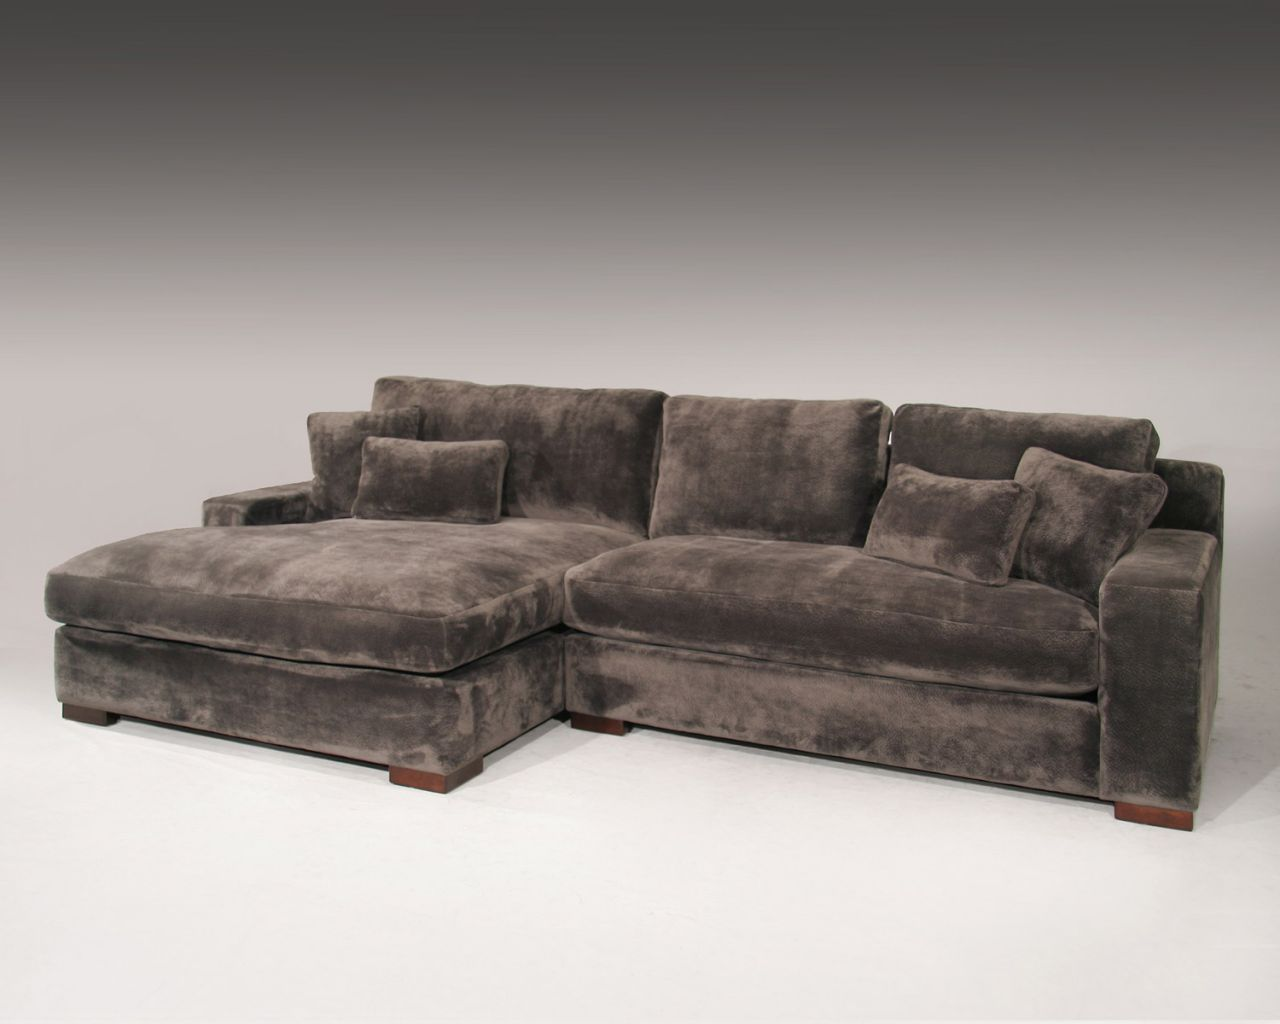 Double Chaise Home Gallery Furniture For Fairmont Seating